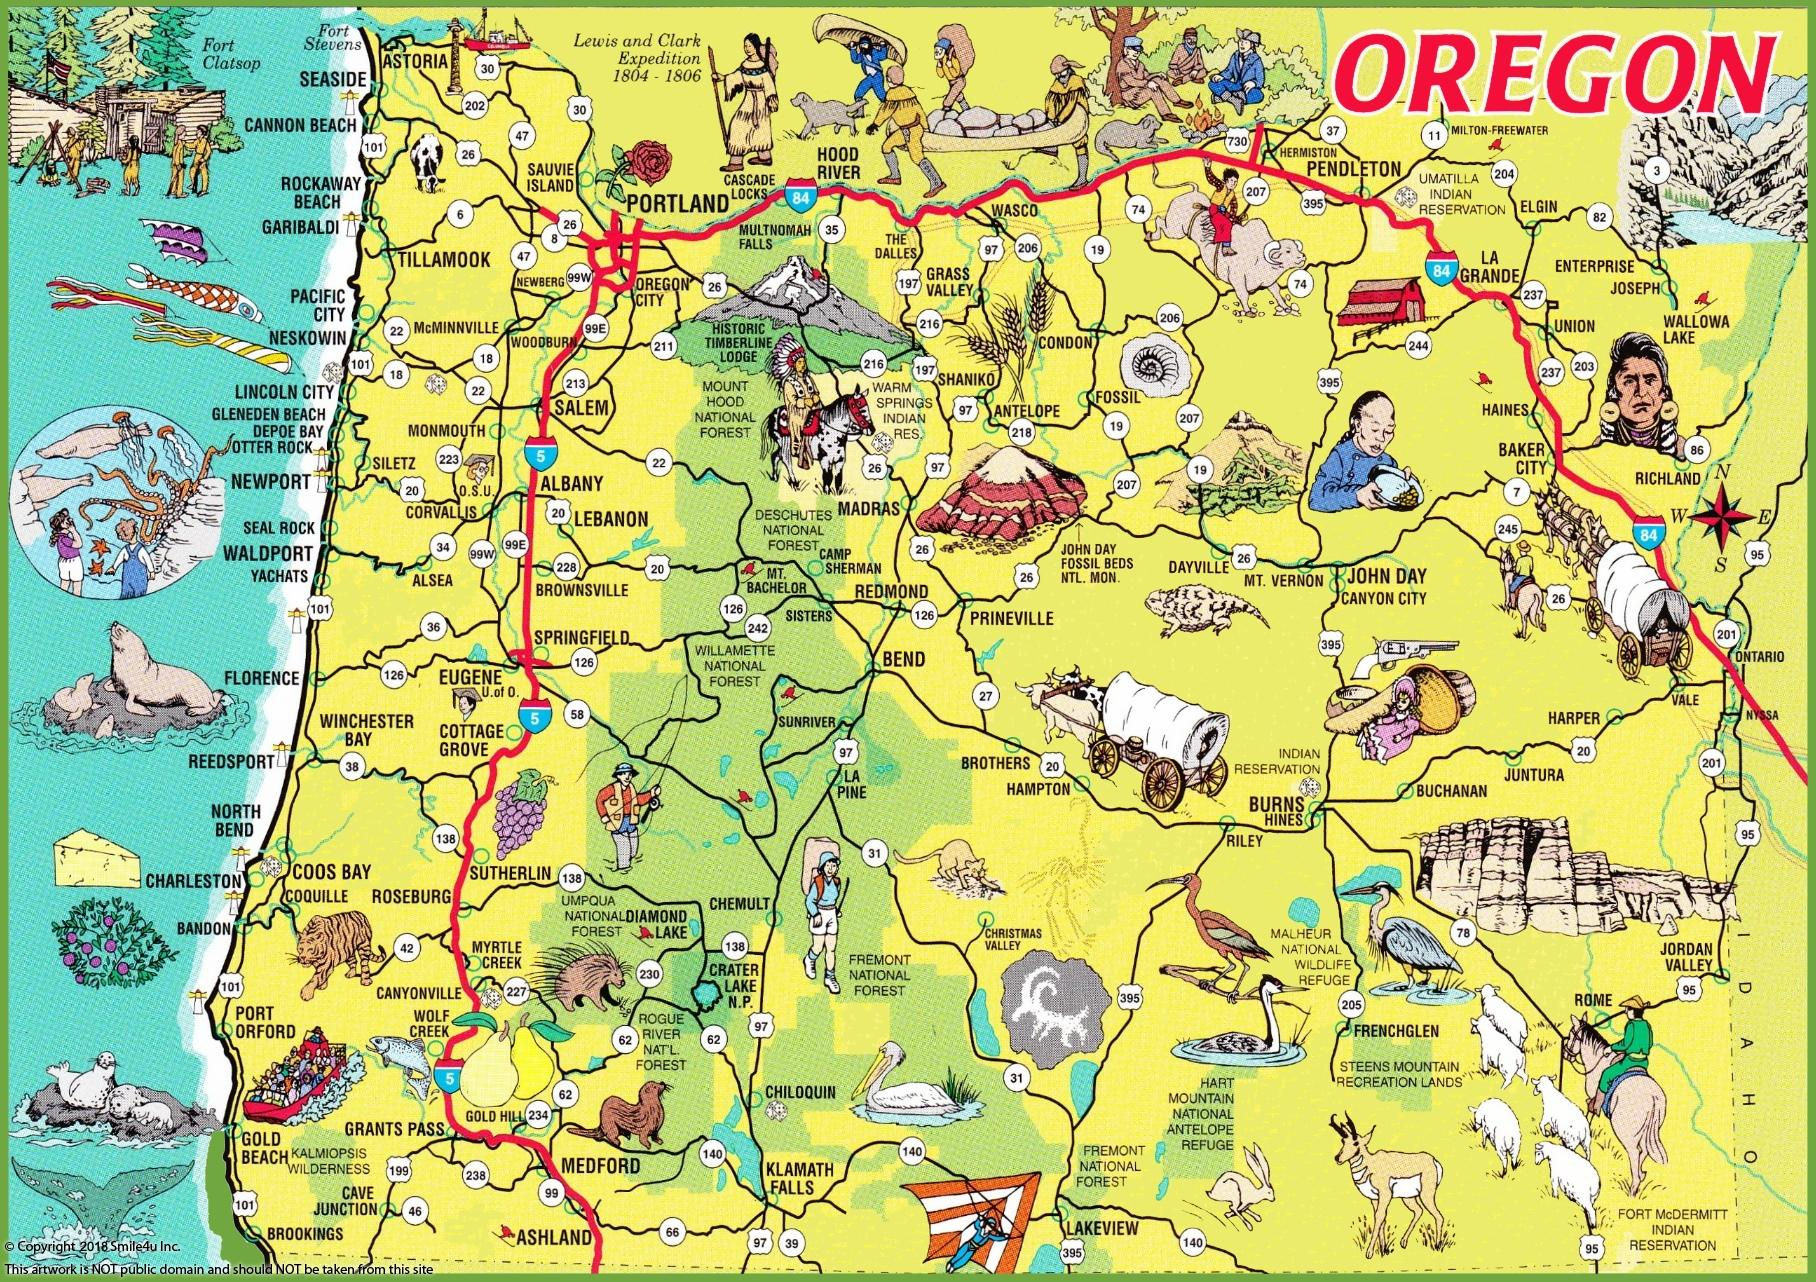 838329_watermarked_pictorial-travel-map-of-oregon.jpg